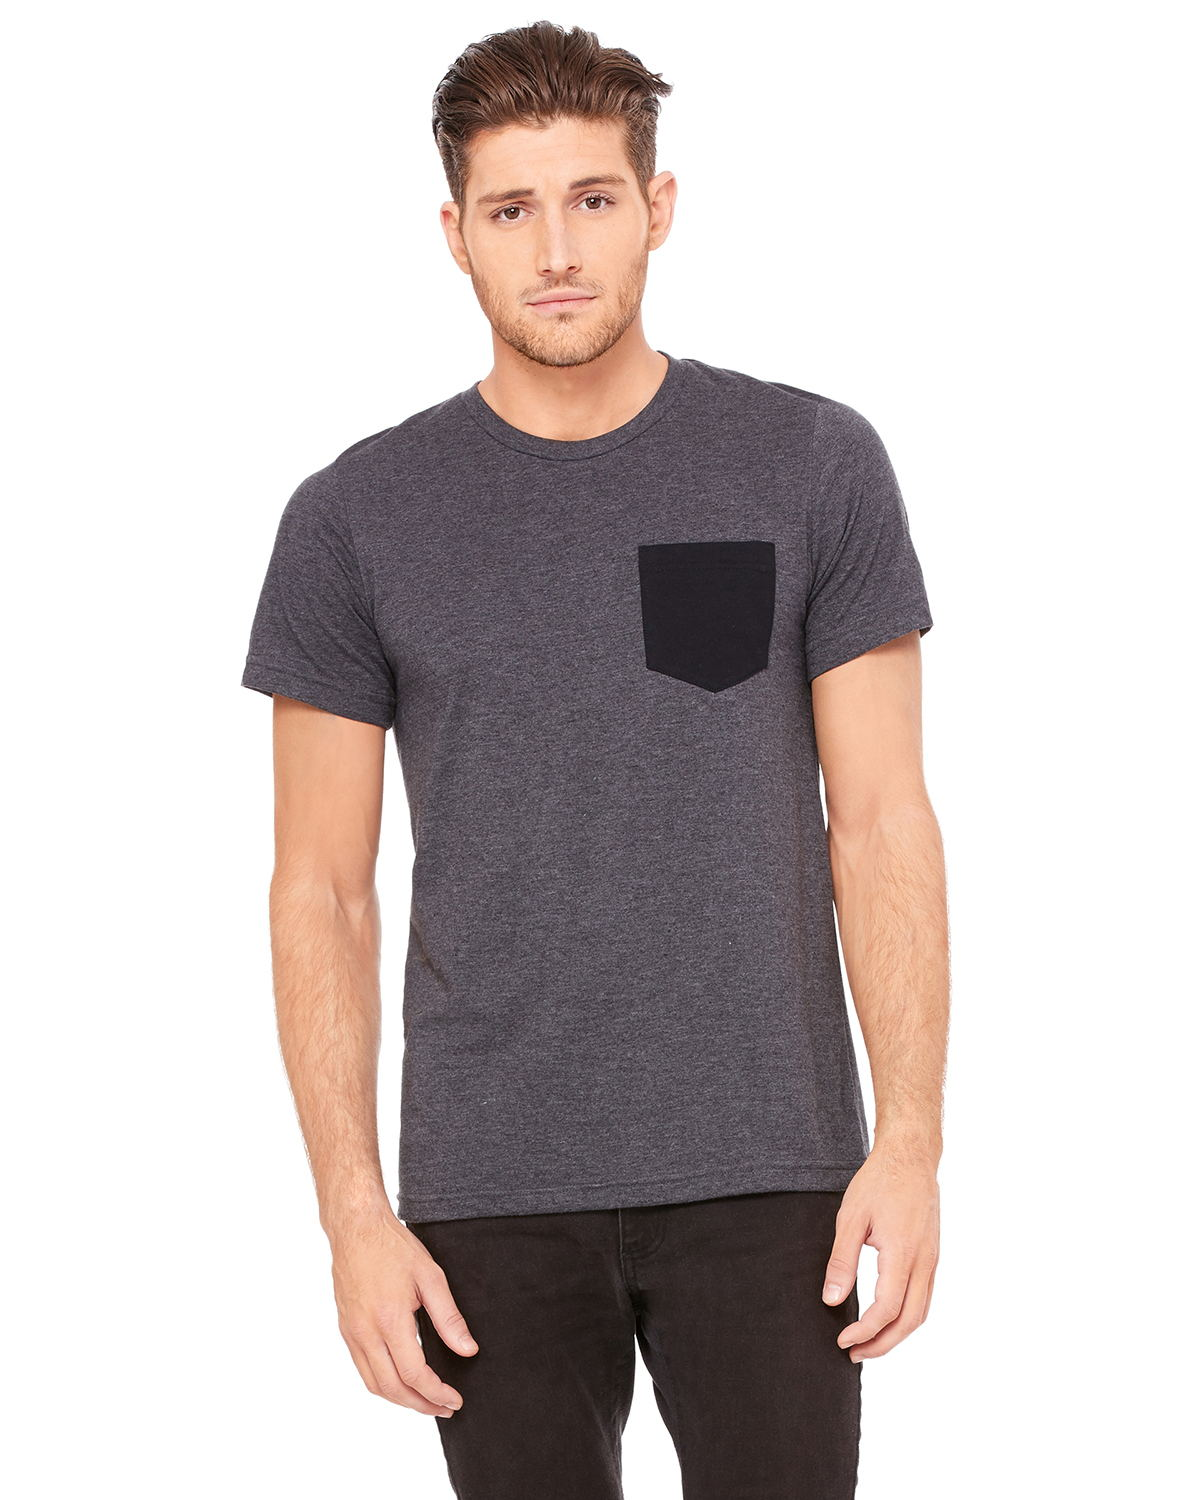 Bella + Canvas 3021 Men's Jersey Short-Sleeve Pocket T-Shirt